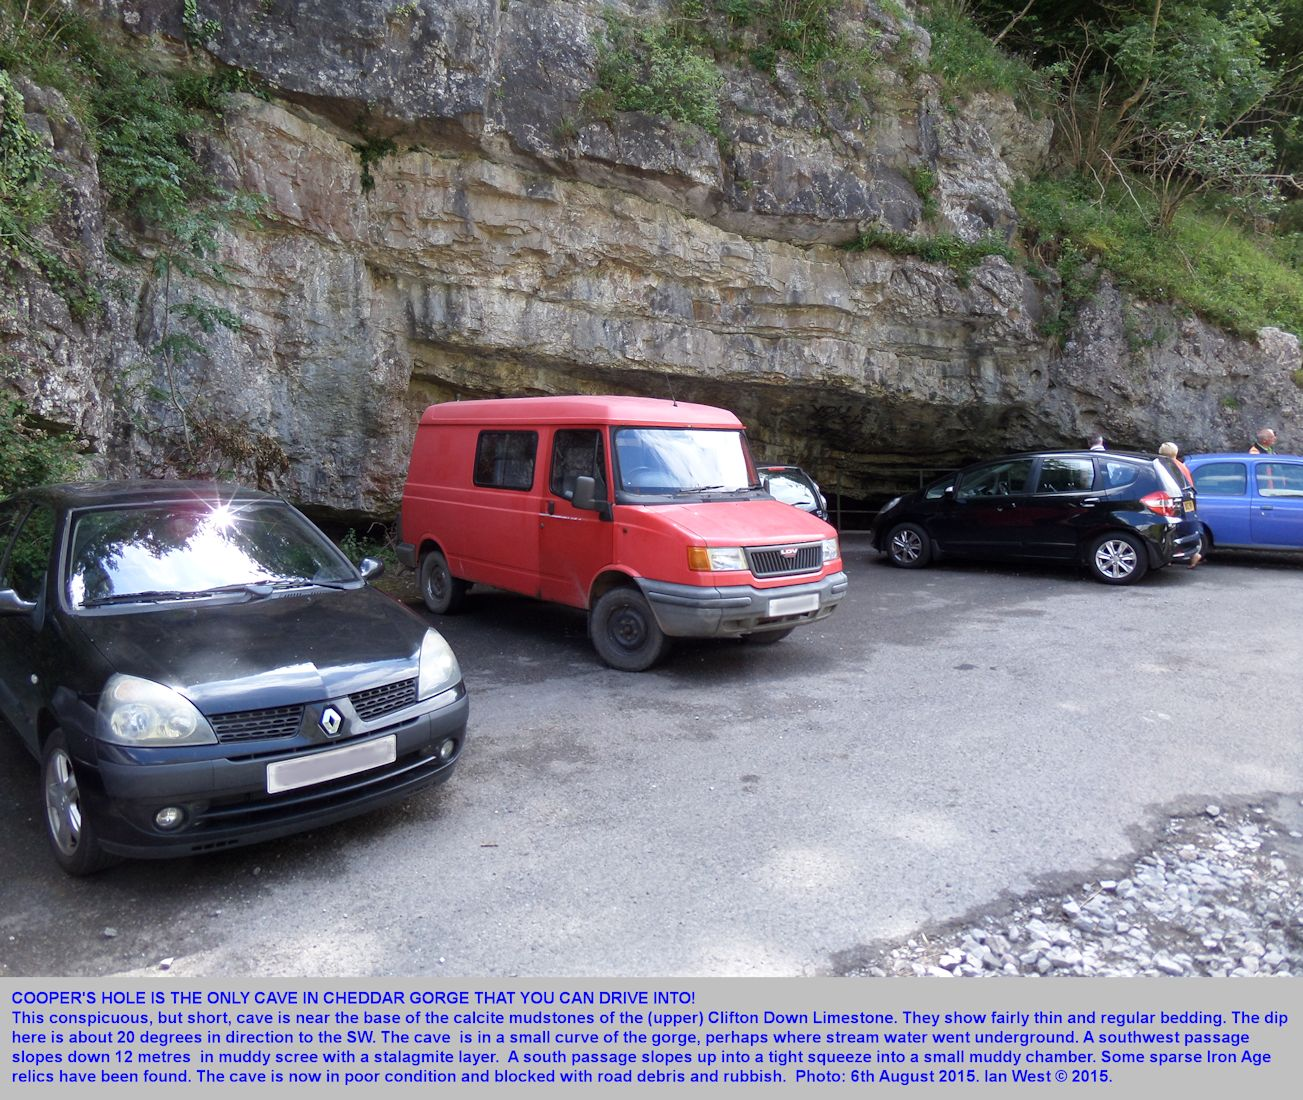 Cooper's Hole cave in a car park in Cheddar Gorge, Mendip Hills, Somerset